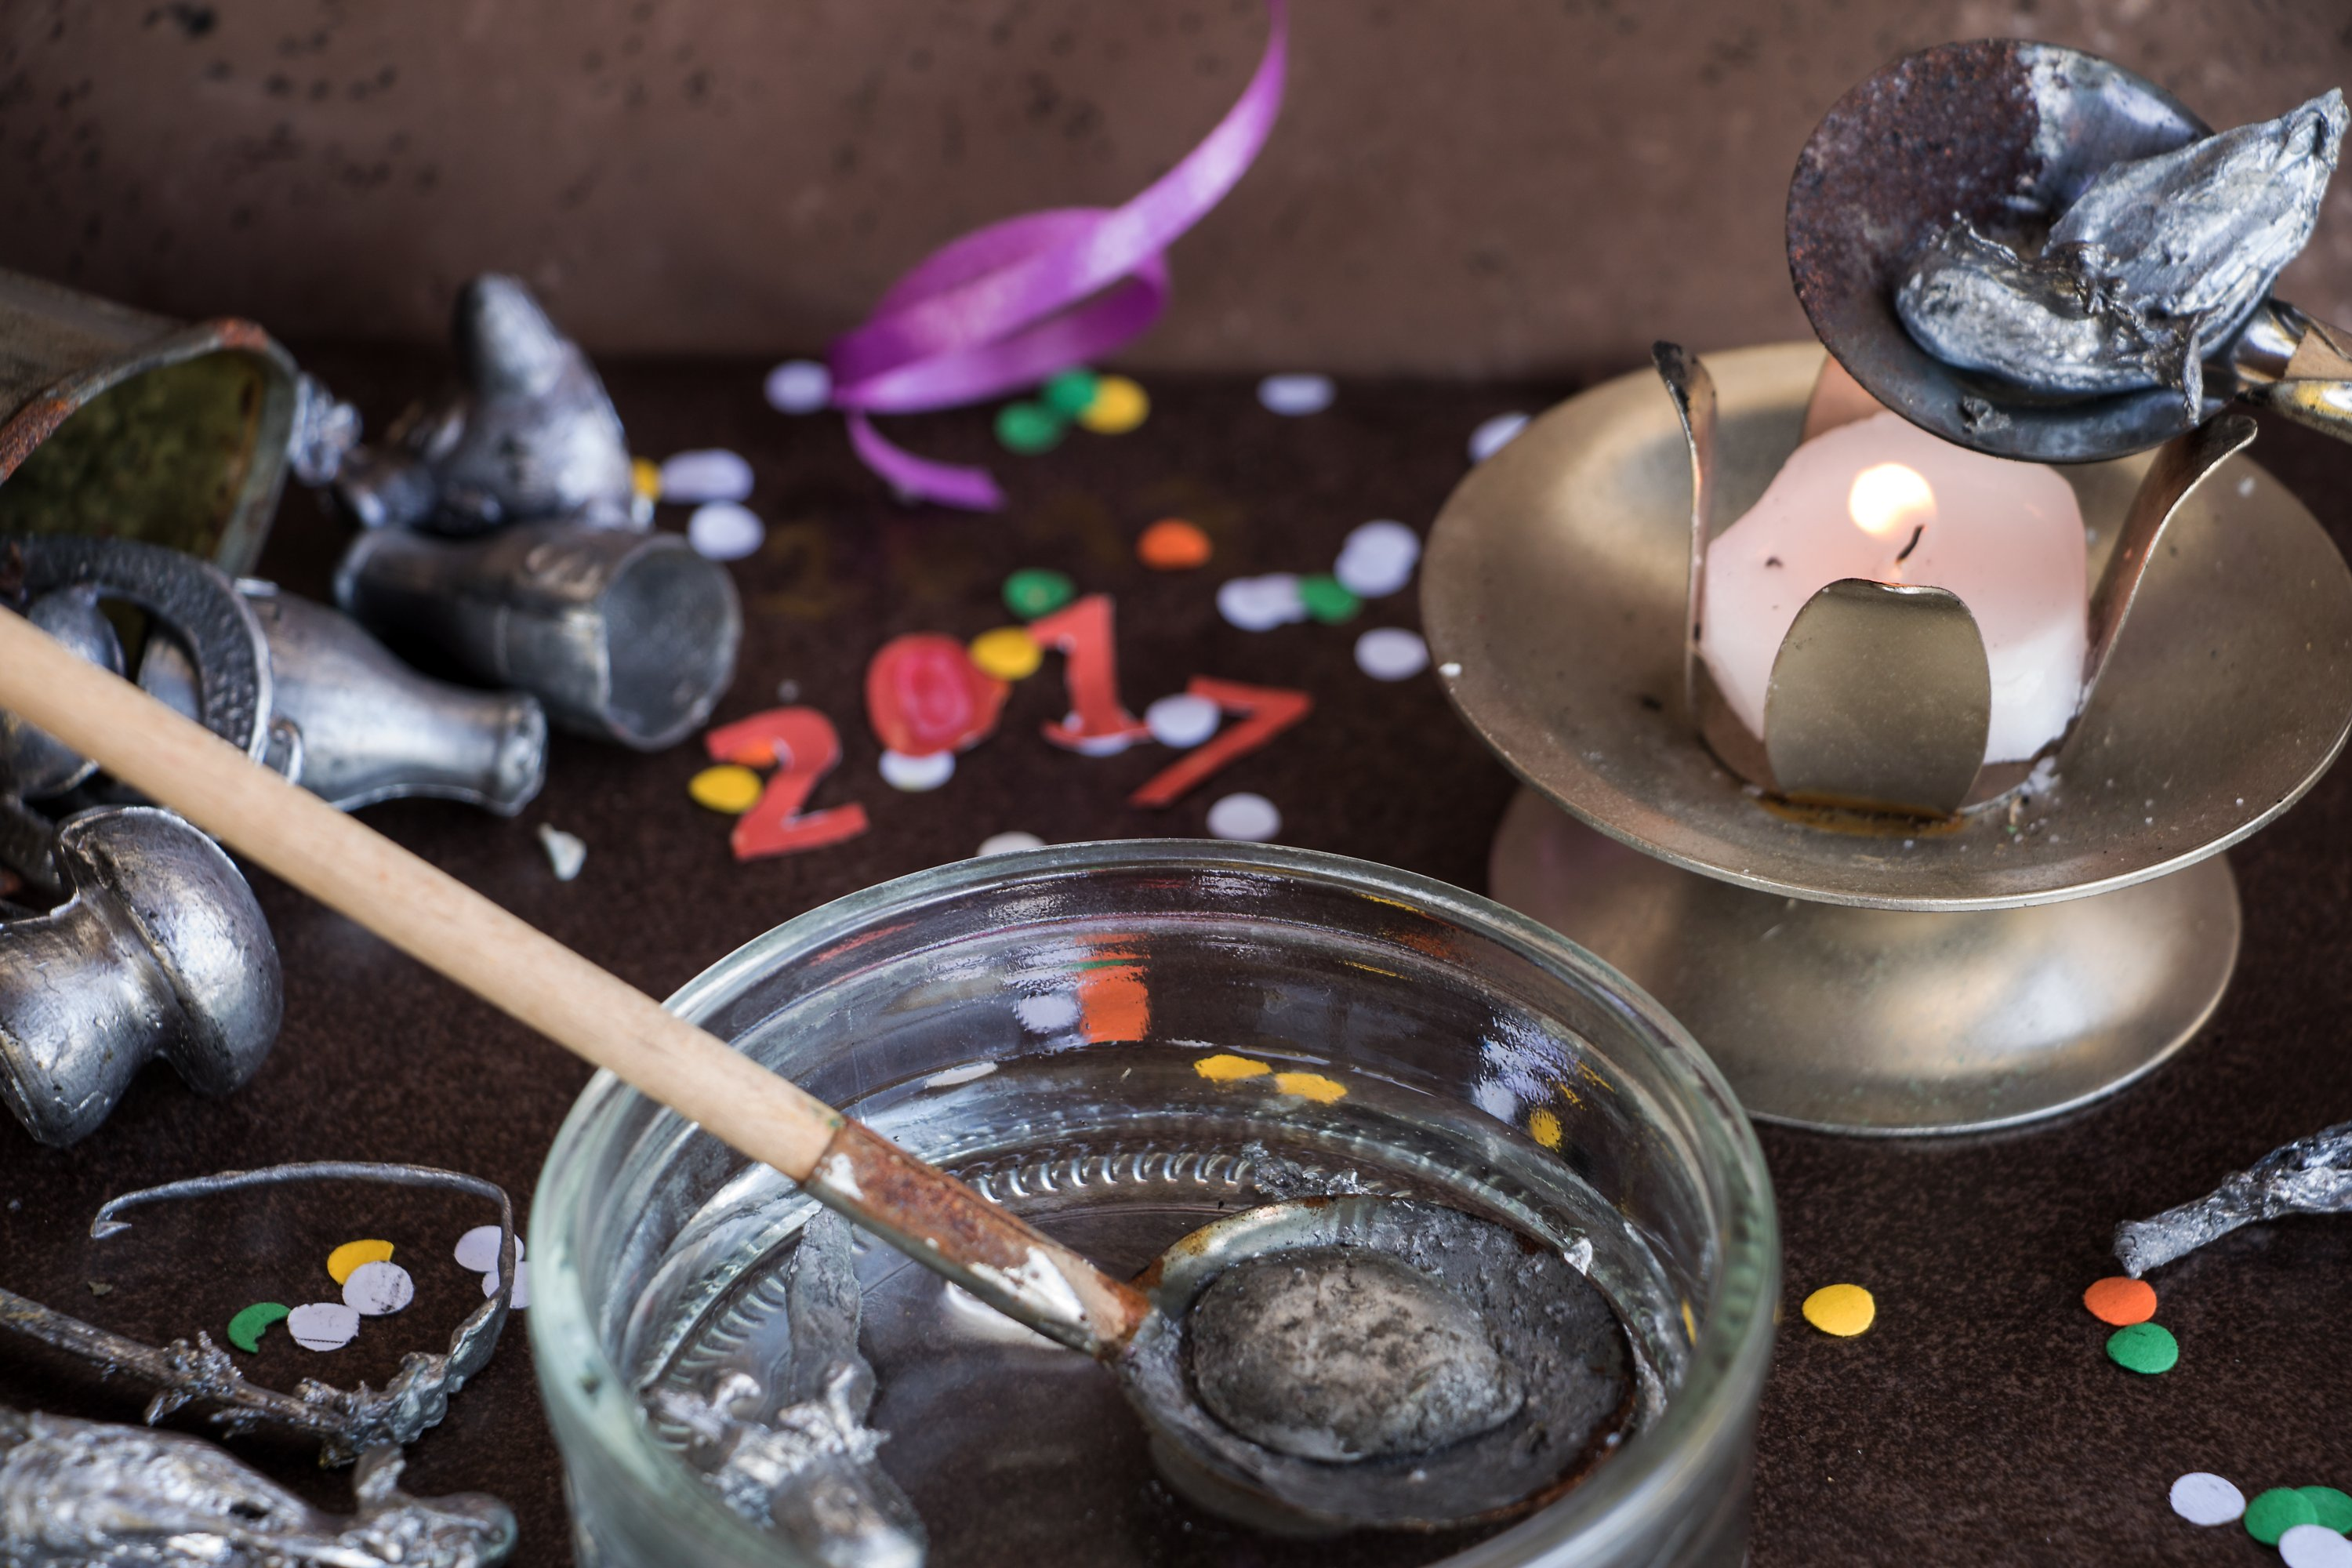 Melting lead, which is a rural tradition in Turkey, is practiced in Germany as well on New Year's Eve.  (Shutterstock photo)